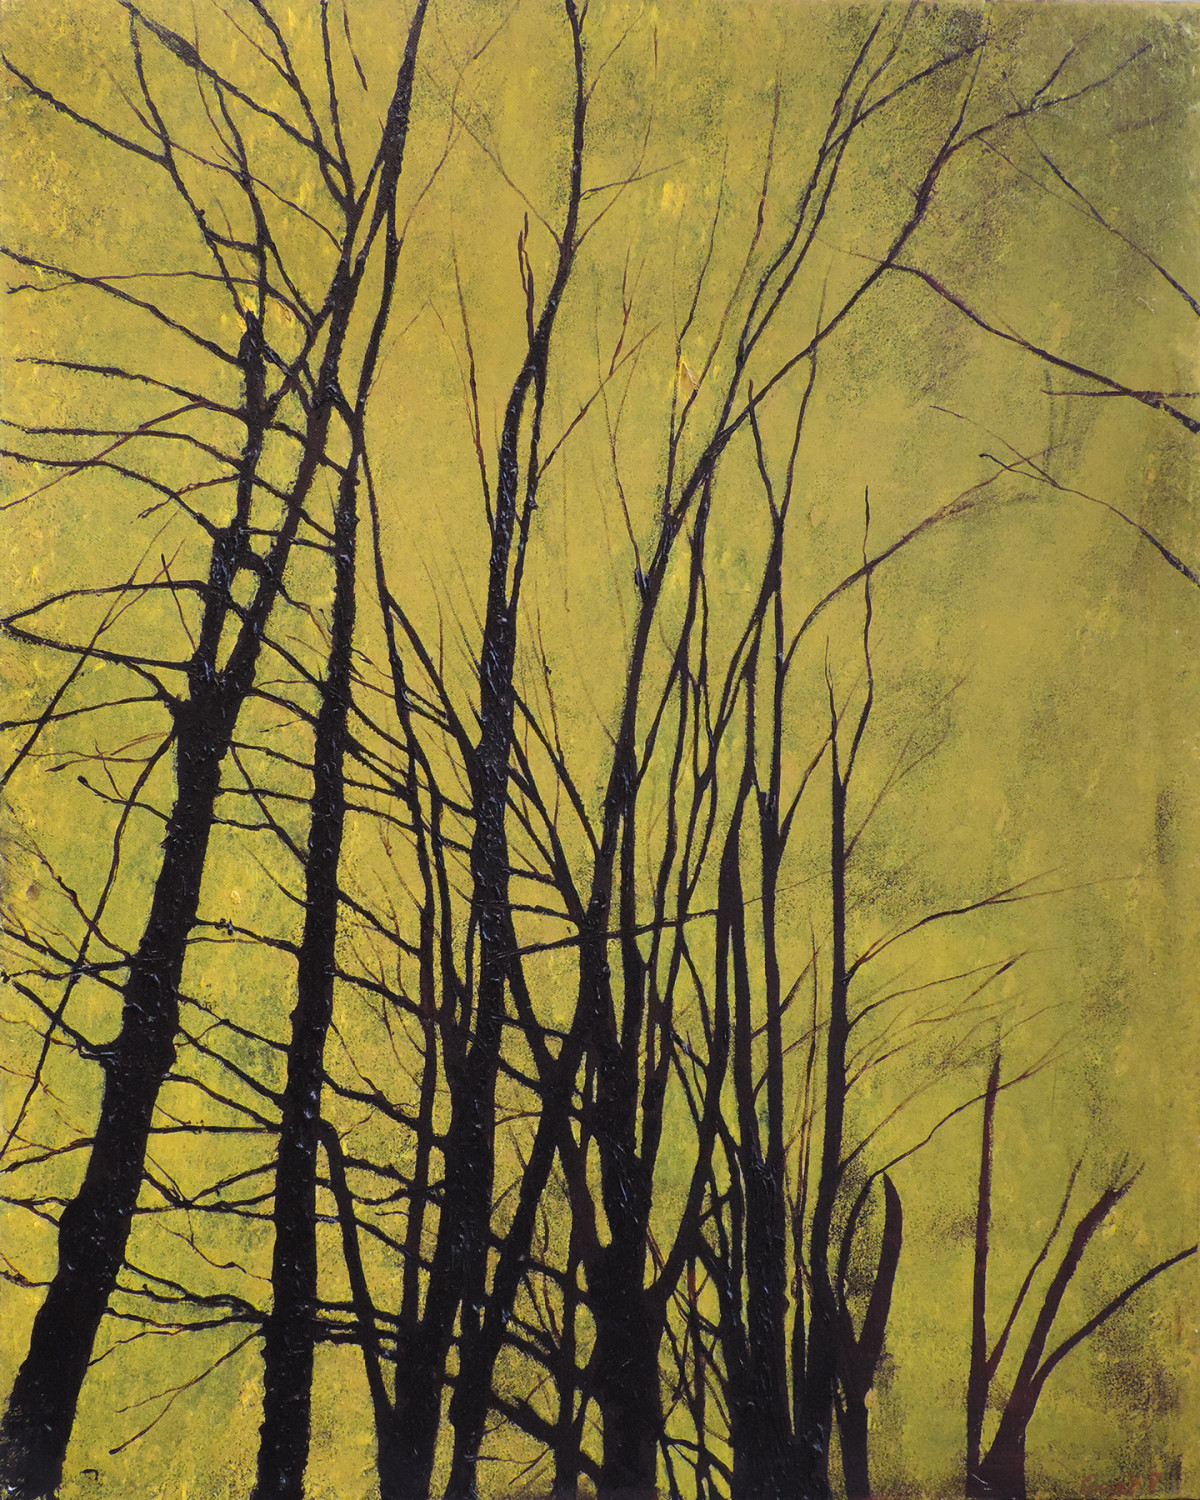 Lincoln Woods 17 - November - Oil on Canvas - 24 x 30